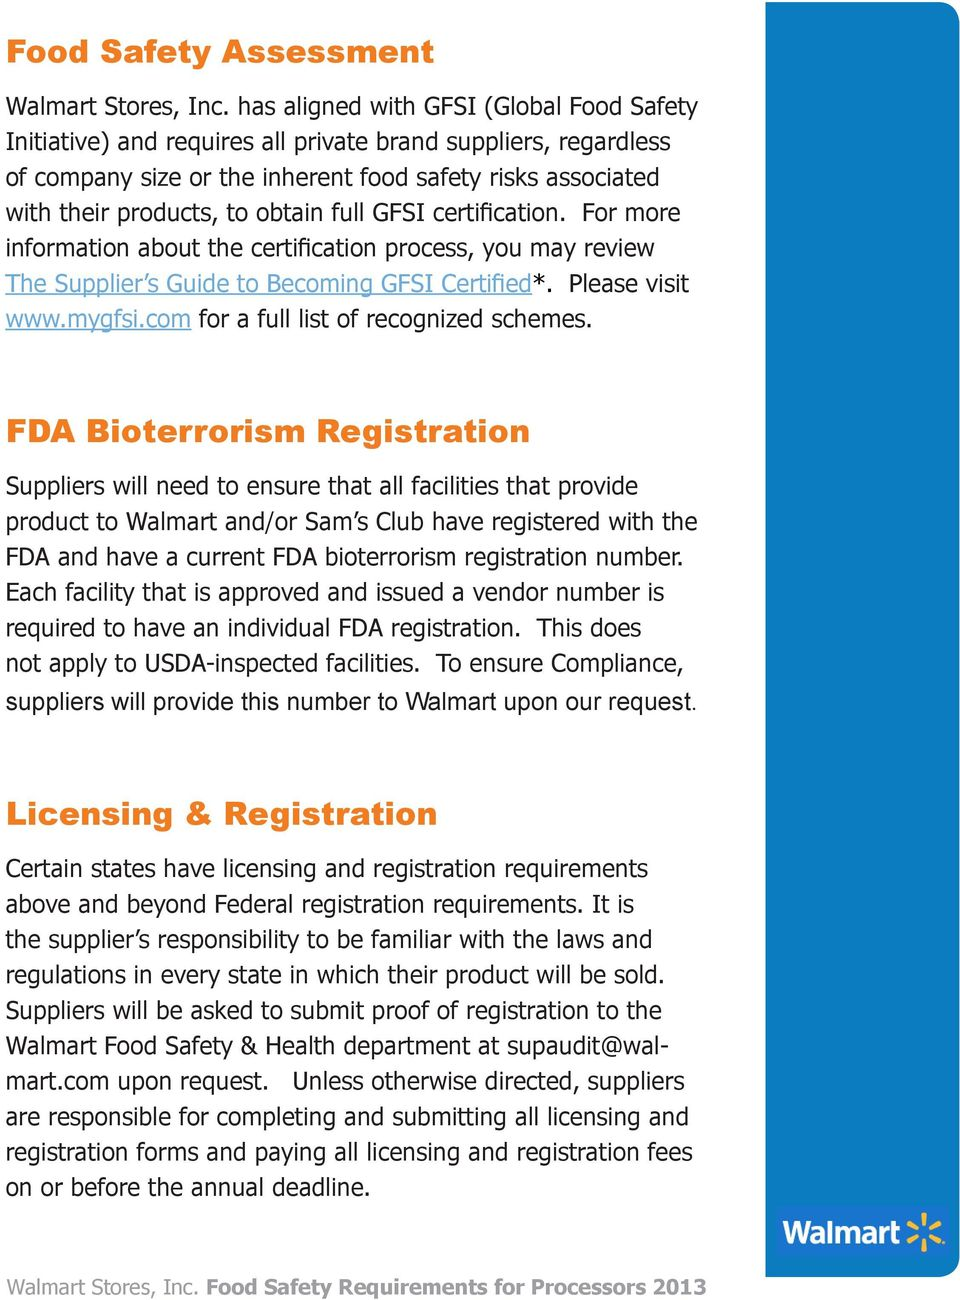 full GFSI certification. For more information about the certification process, you may review The Supplier s Guide to Becoming GFSI Certified*. Please visit www.mygfsi.